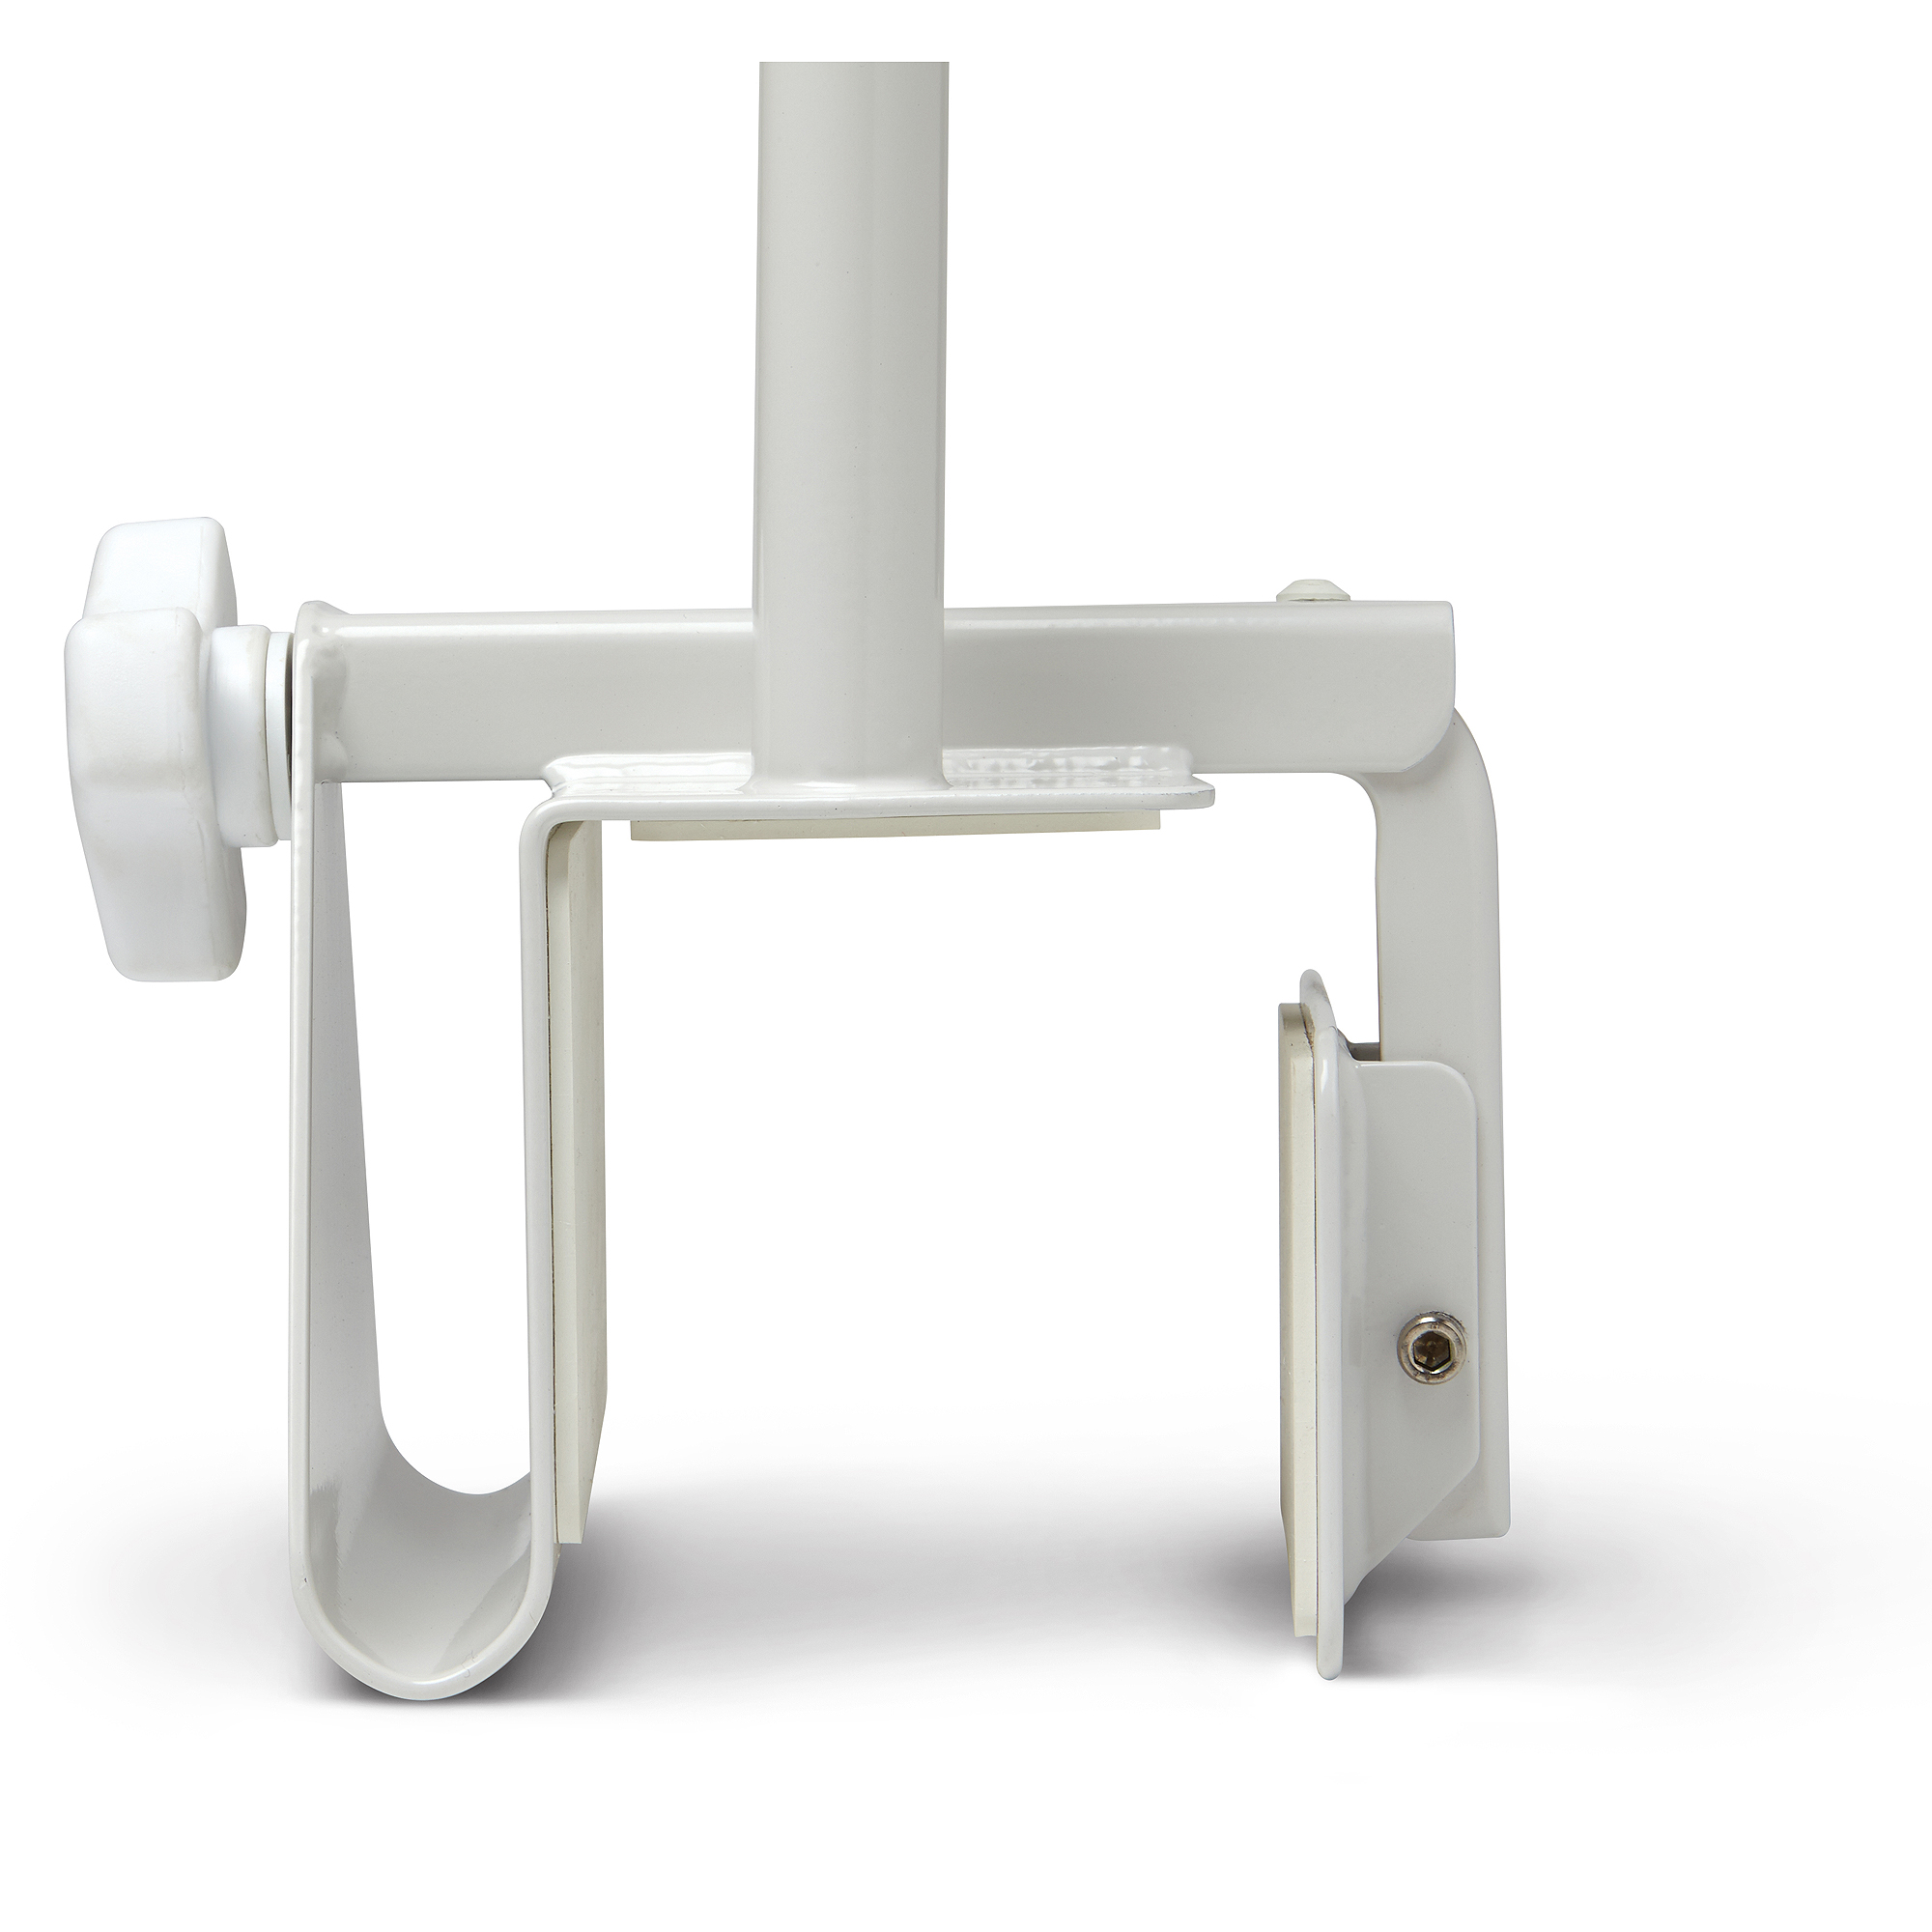 Medline Tool-Free Bath Tub Support Bar - Walmart.com